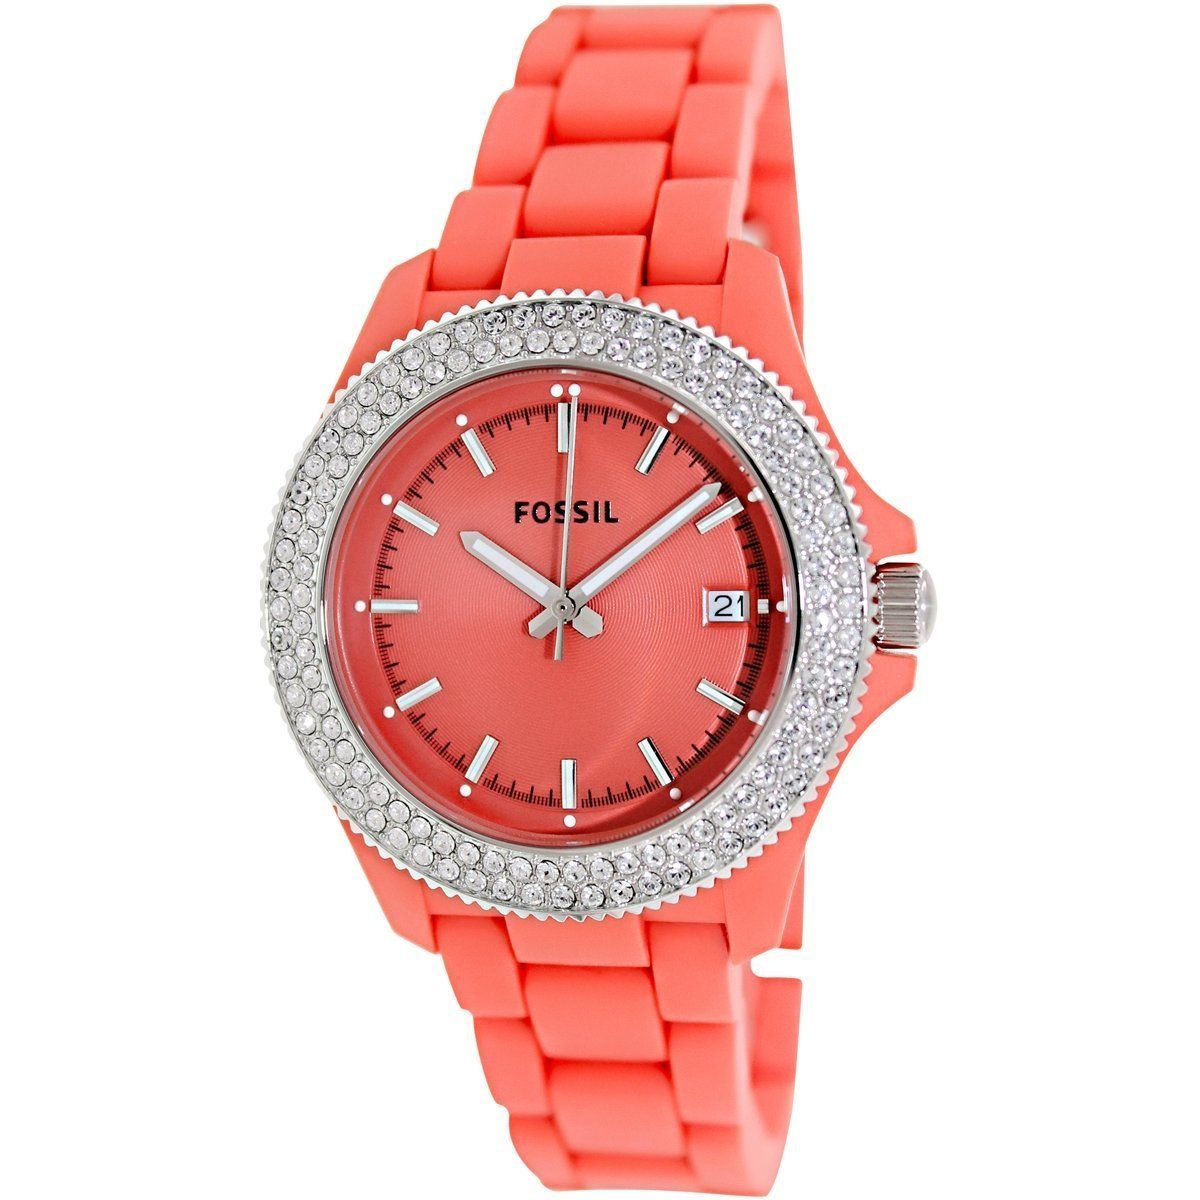 Delight in the unexpected blend of sporty and sophisticated elements that distinguishes a watch in Fossil's Retro Traveler series. The orange resin strap with a crystal framed dial in the same vibrant hue creates a show-stopping accent.